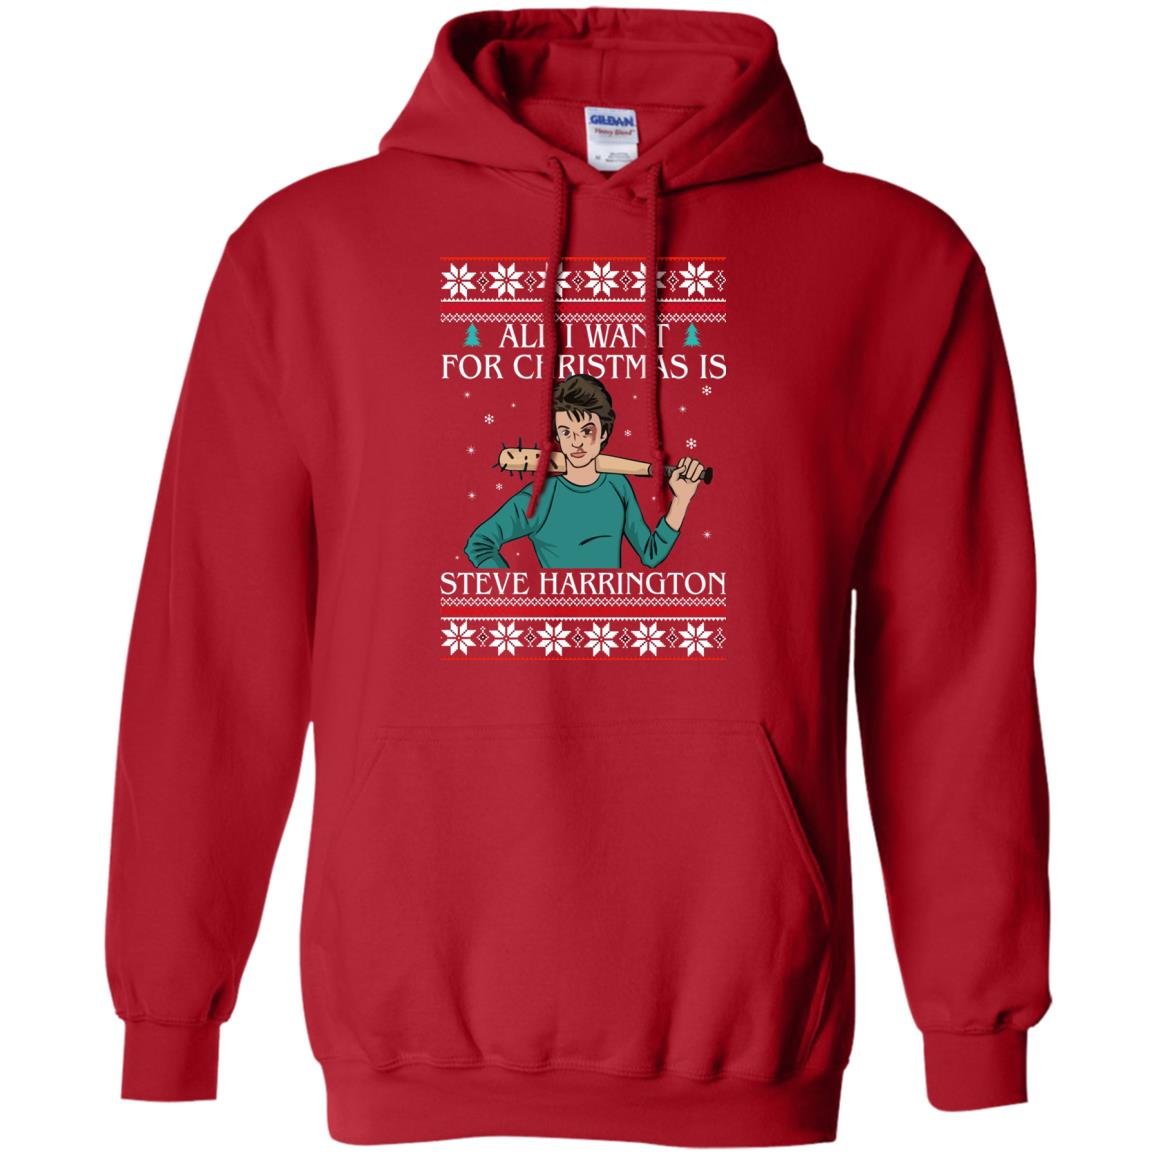 image 4033 - All I want for Christmas is Steve Harrington Ugly Sweater